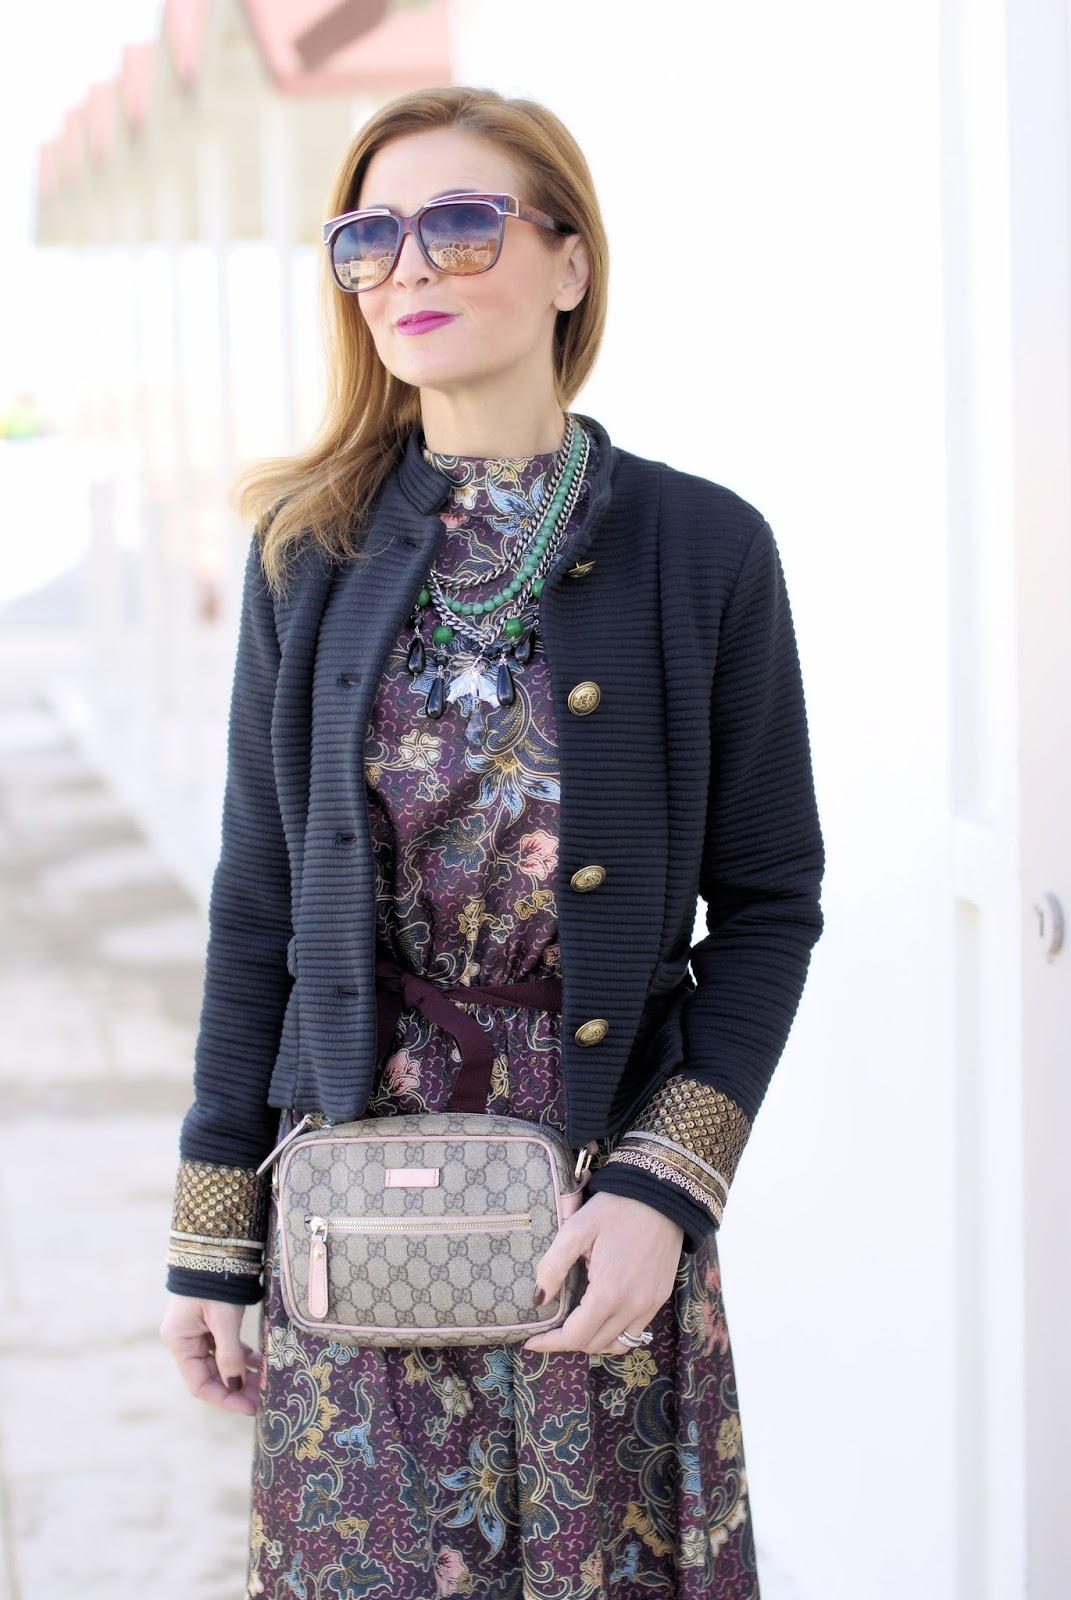 70s style military jacket and Vicolo dress on Fashion and Cookies fashion blog, fashion blogger style